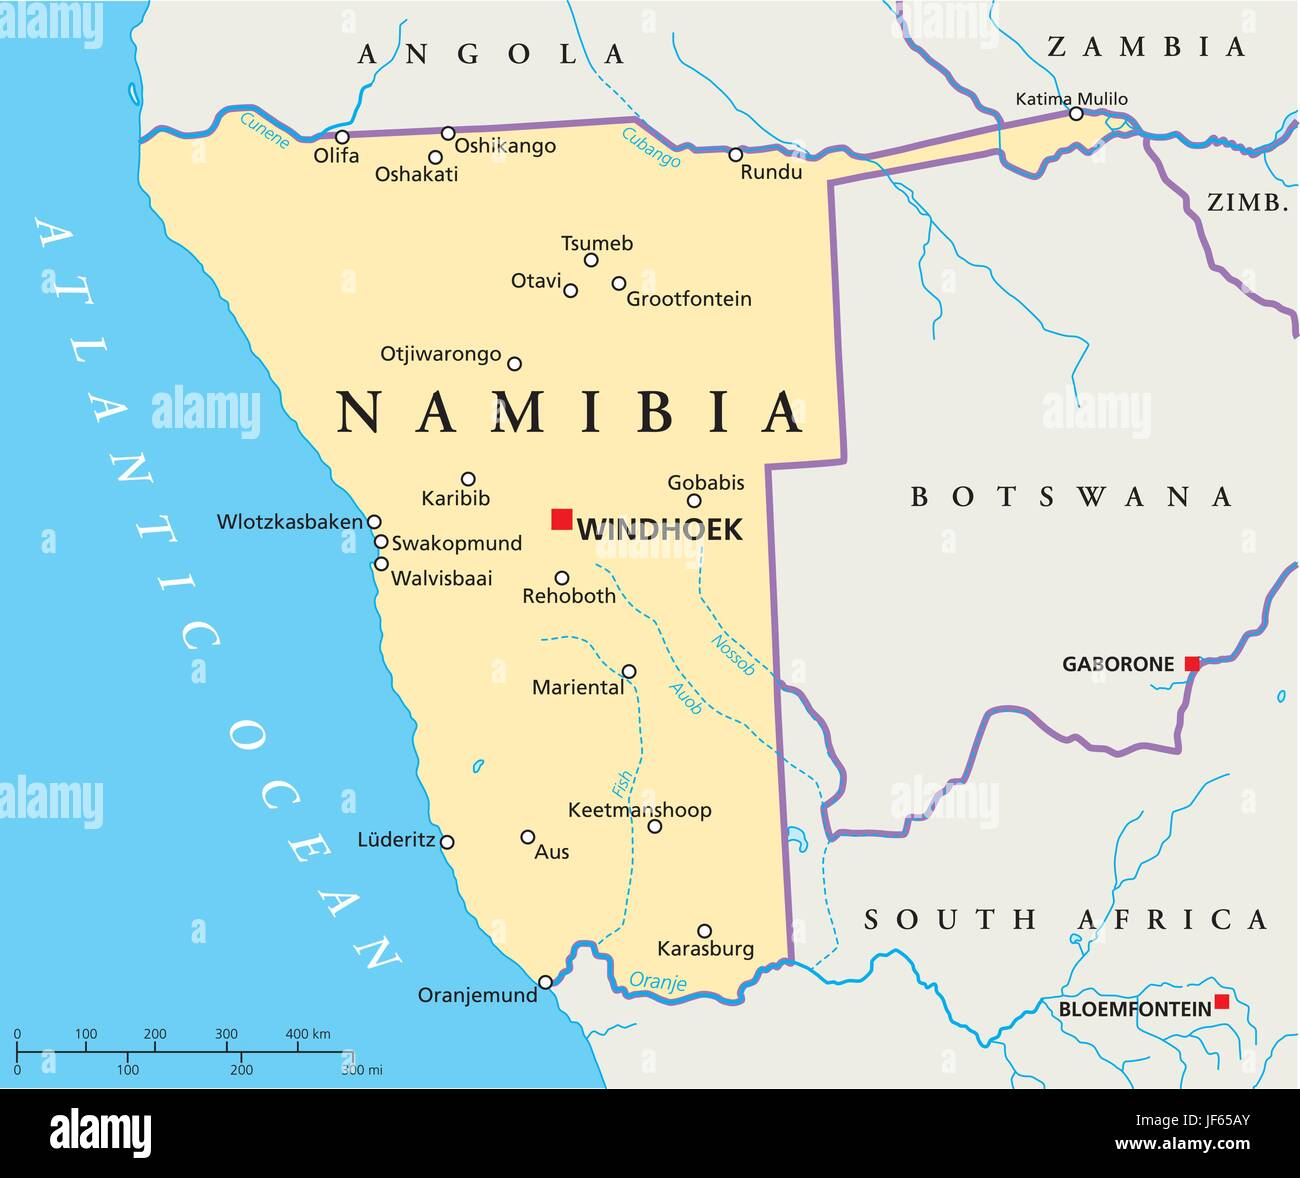 Namibia On Africa Map.Namibia Map Atlas Map Of The World Travel Desert Wasteland